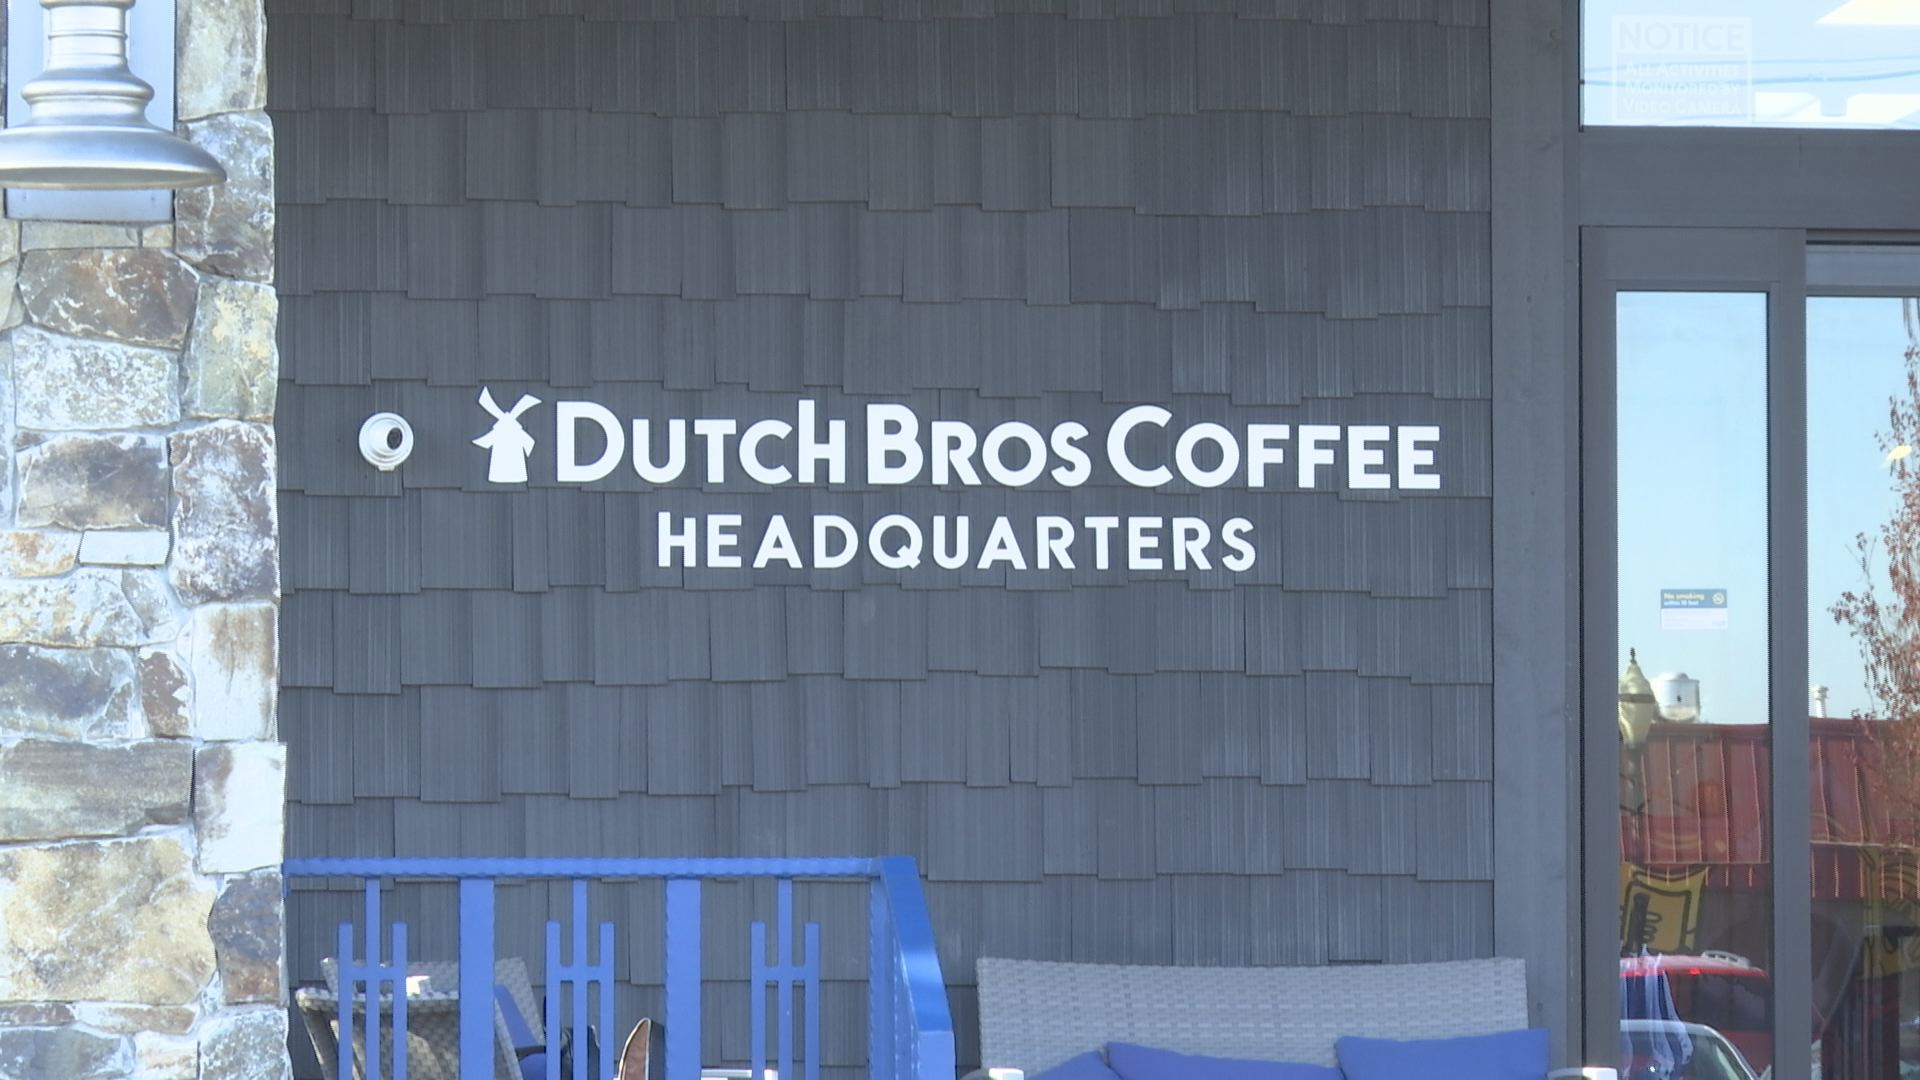 Dutch Bros employees forced to evacuate in Paradise - KOBI ... on baskin-robbins location map, dunkin' donuts location map, carl's jr. location map, burger king location map, krispy kreme location map, baja fresh location map, cold stone creamery location map, el pollo loco location map, dairy queen location map, outback steakhouse location map, wendy's location map, jack in the box location map, del taco location map,